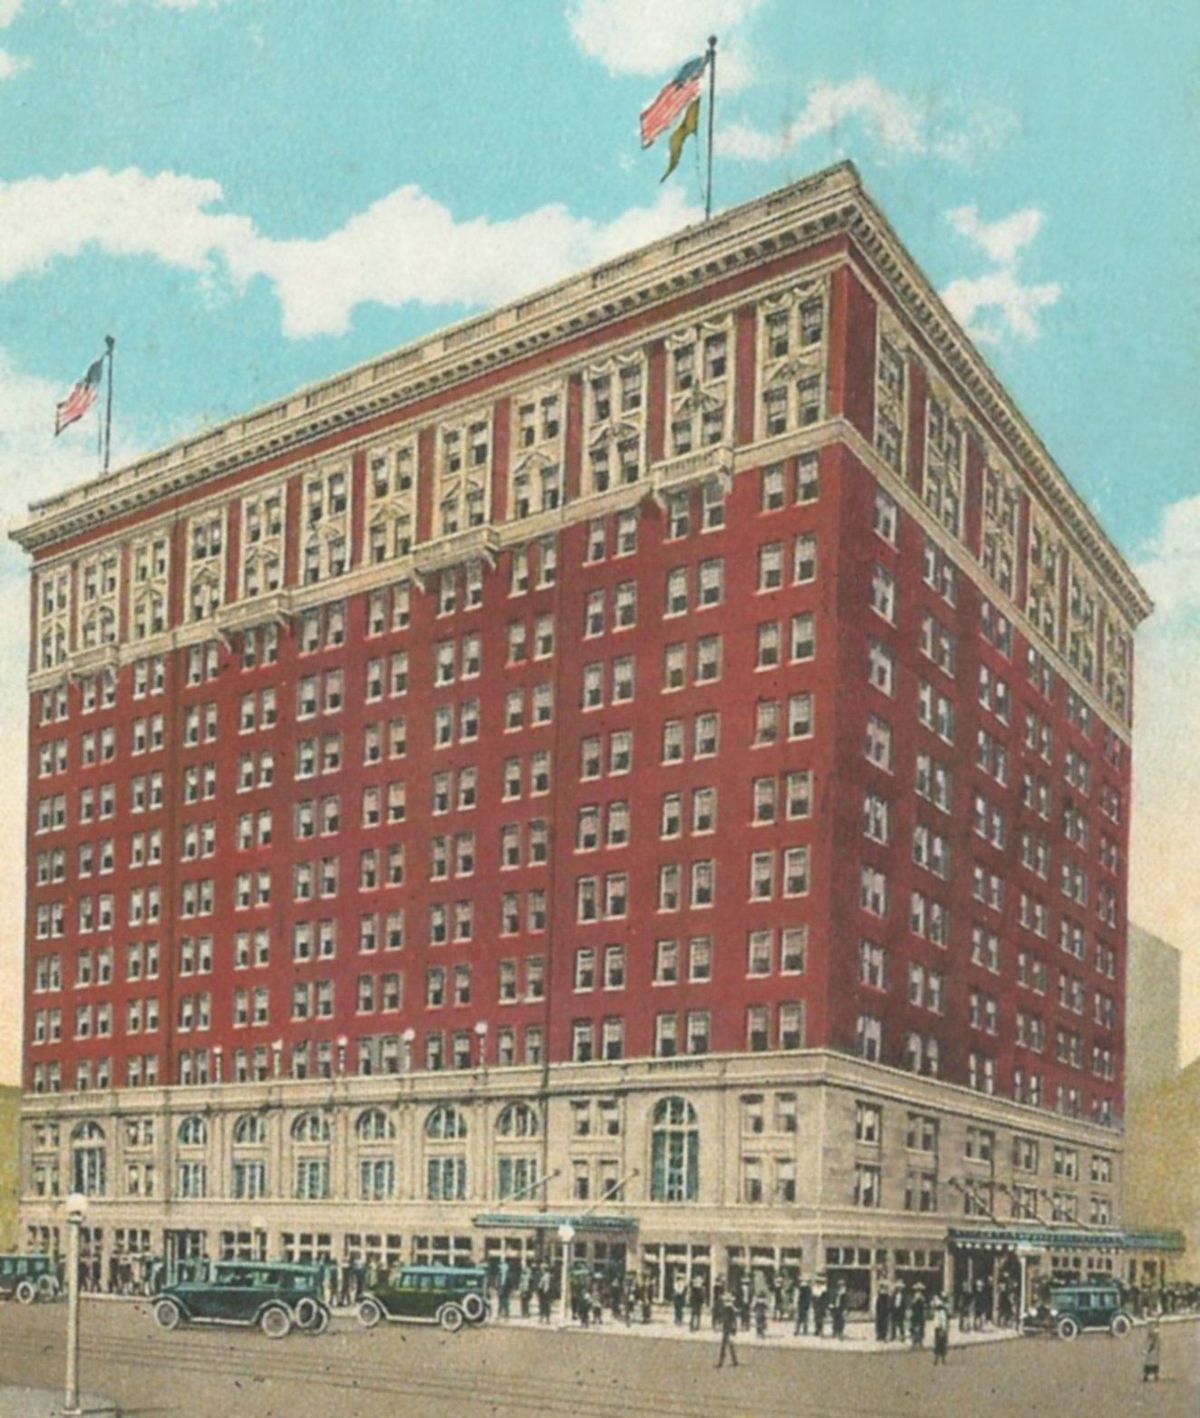 Courtesy of James E. Casto, a postcard from the opening of the hotel in 1926.